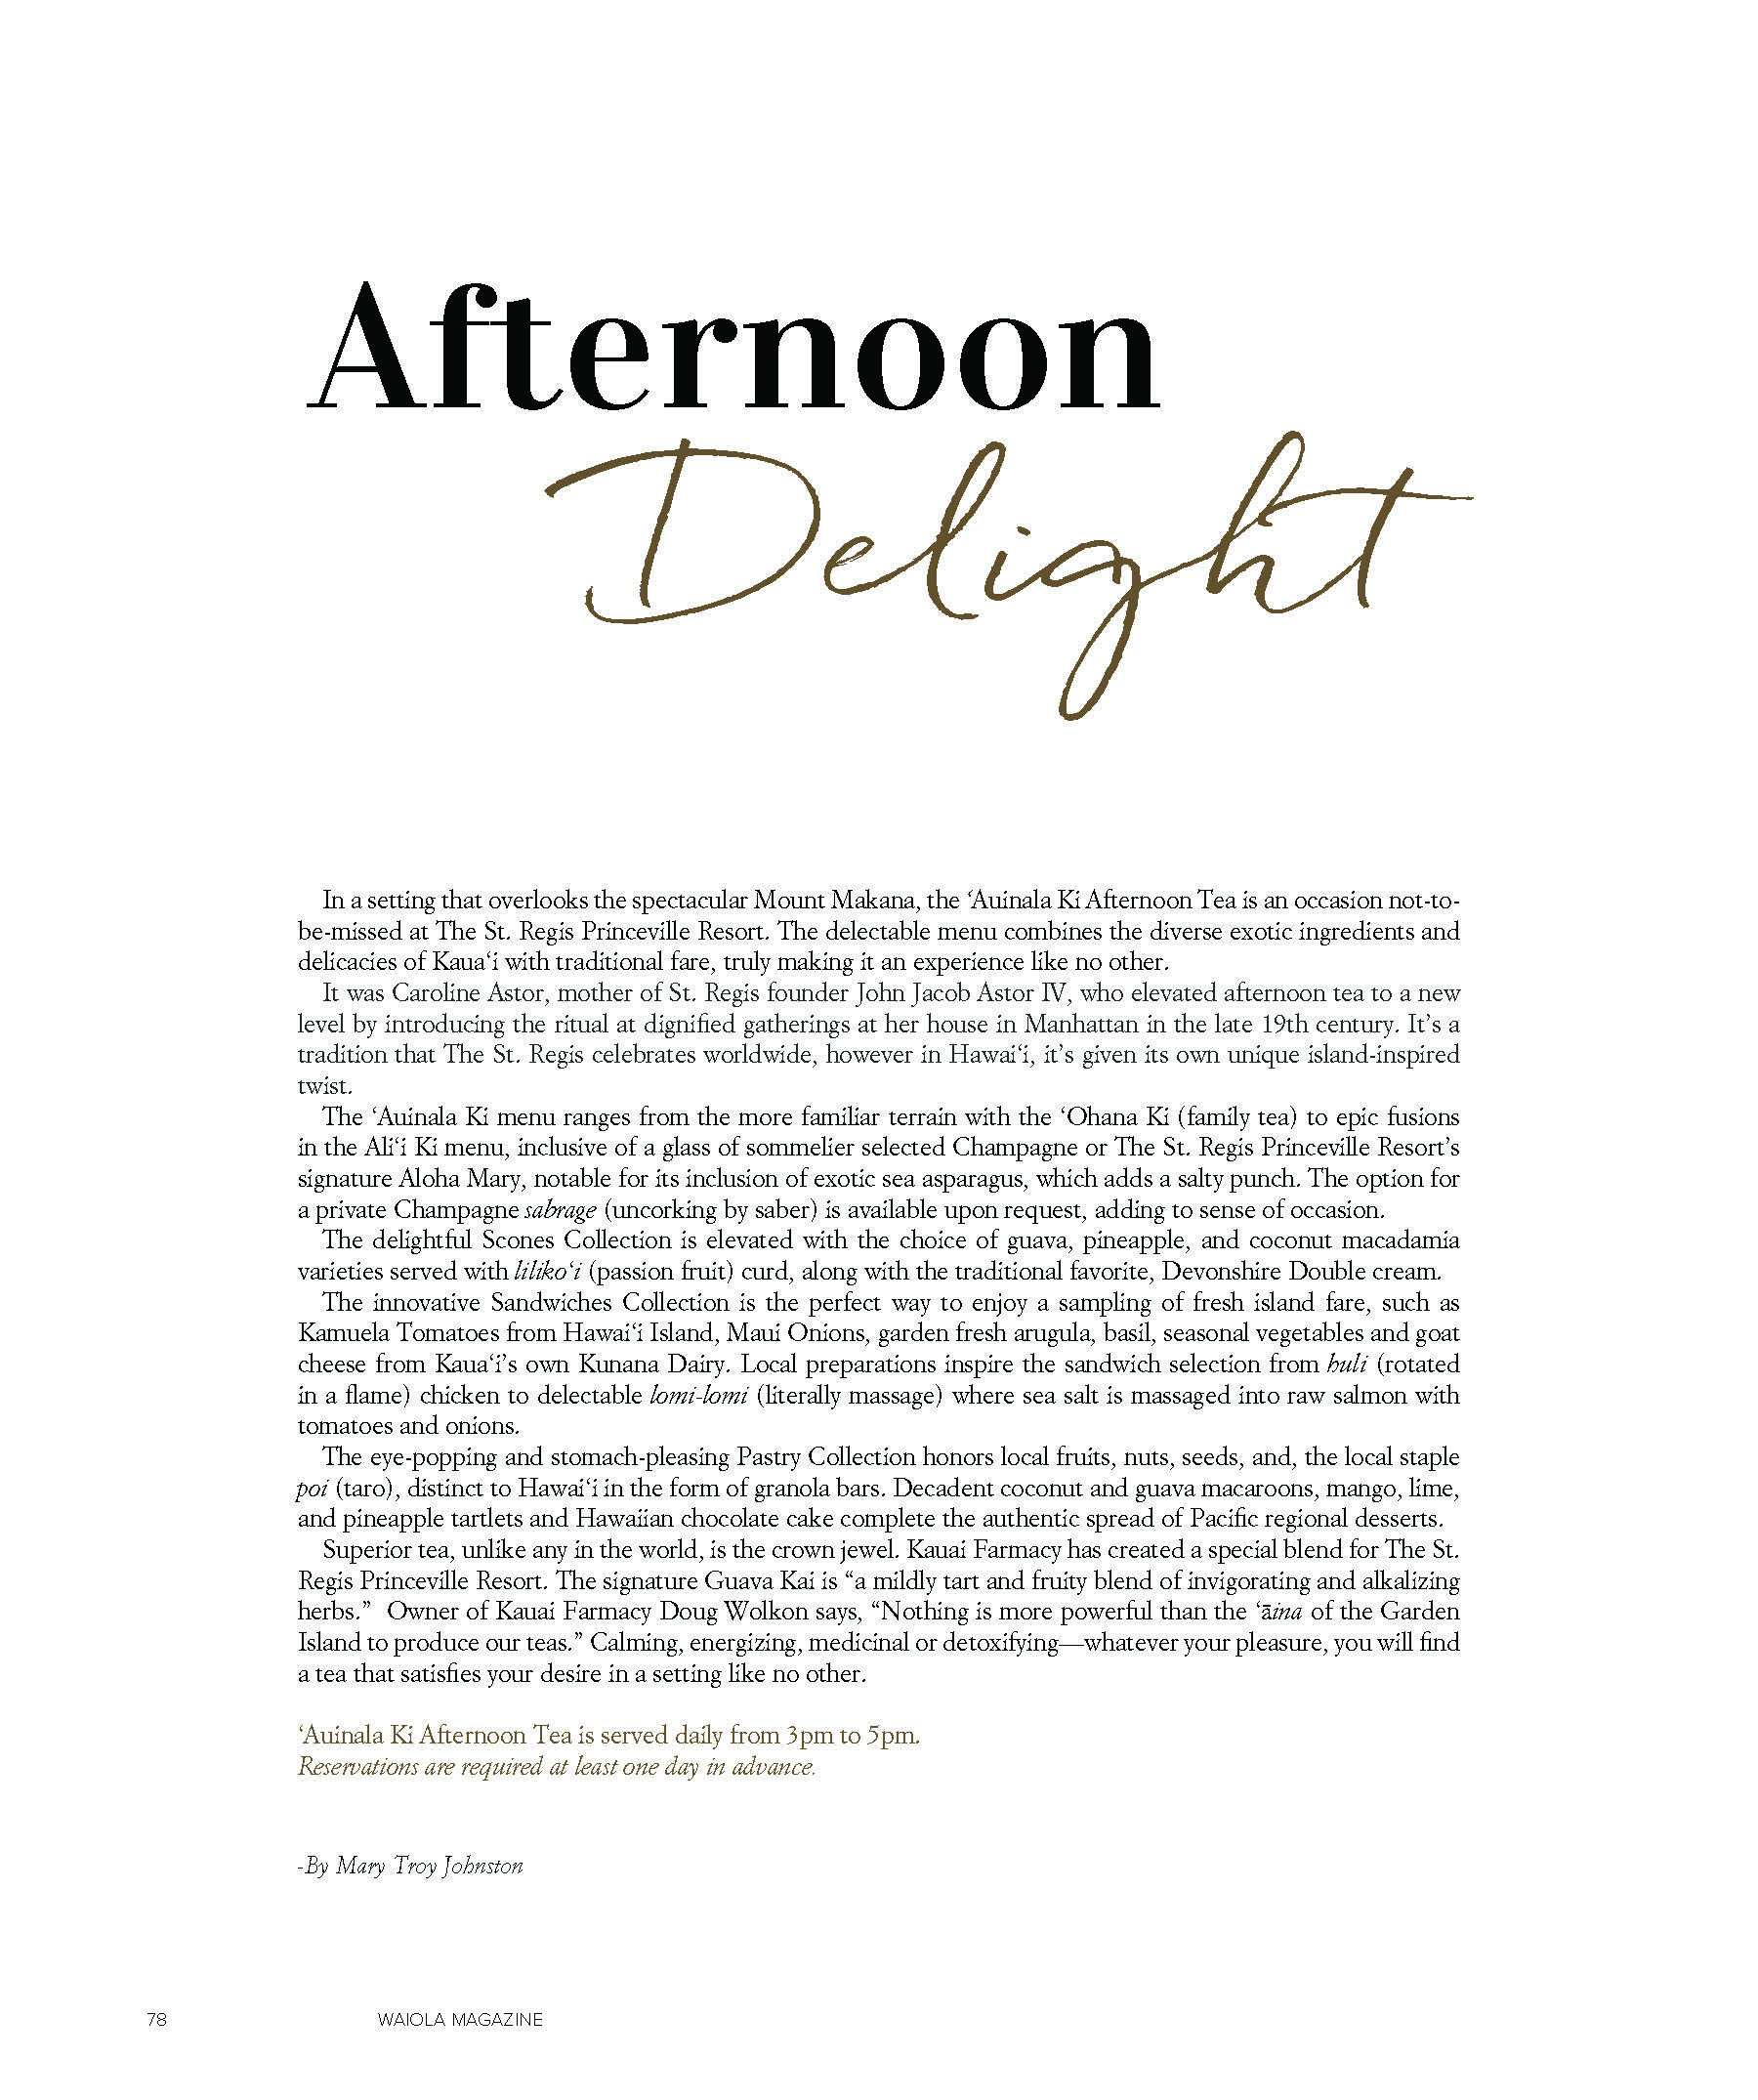 St Regis Afternoon Delight_Page_1